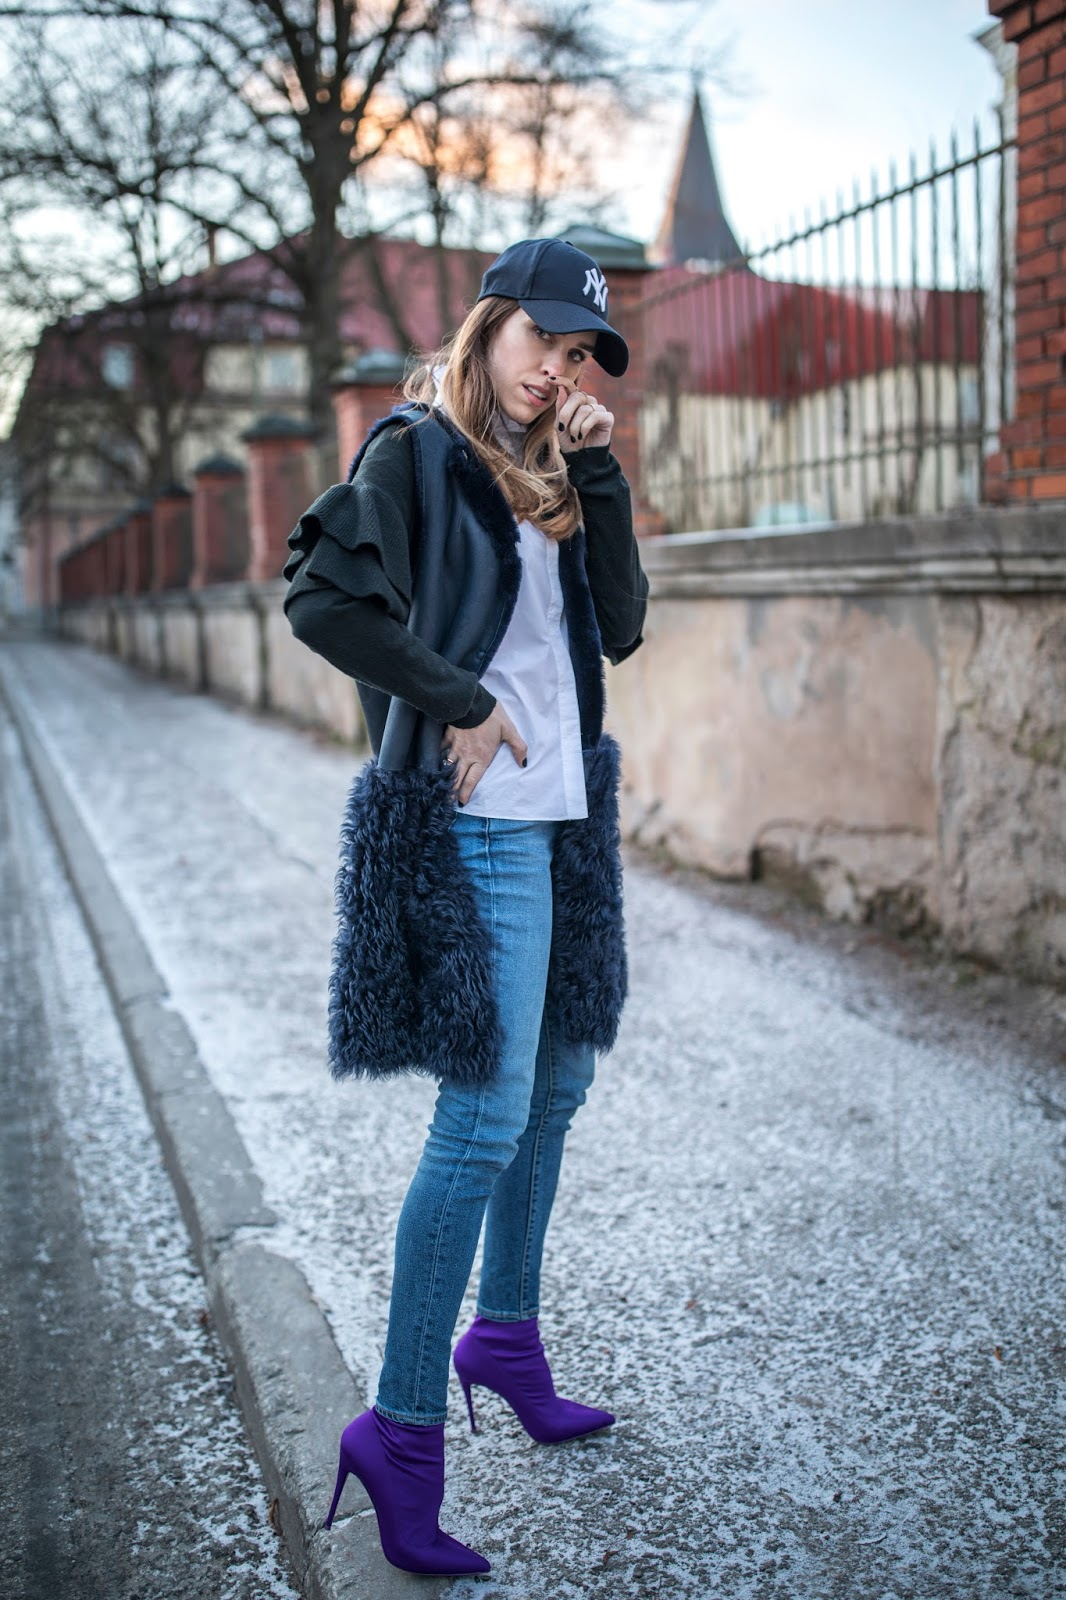 cap heels winter outfit